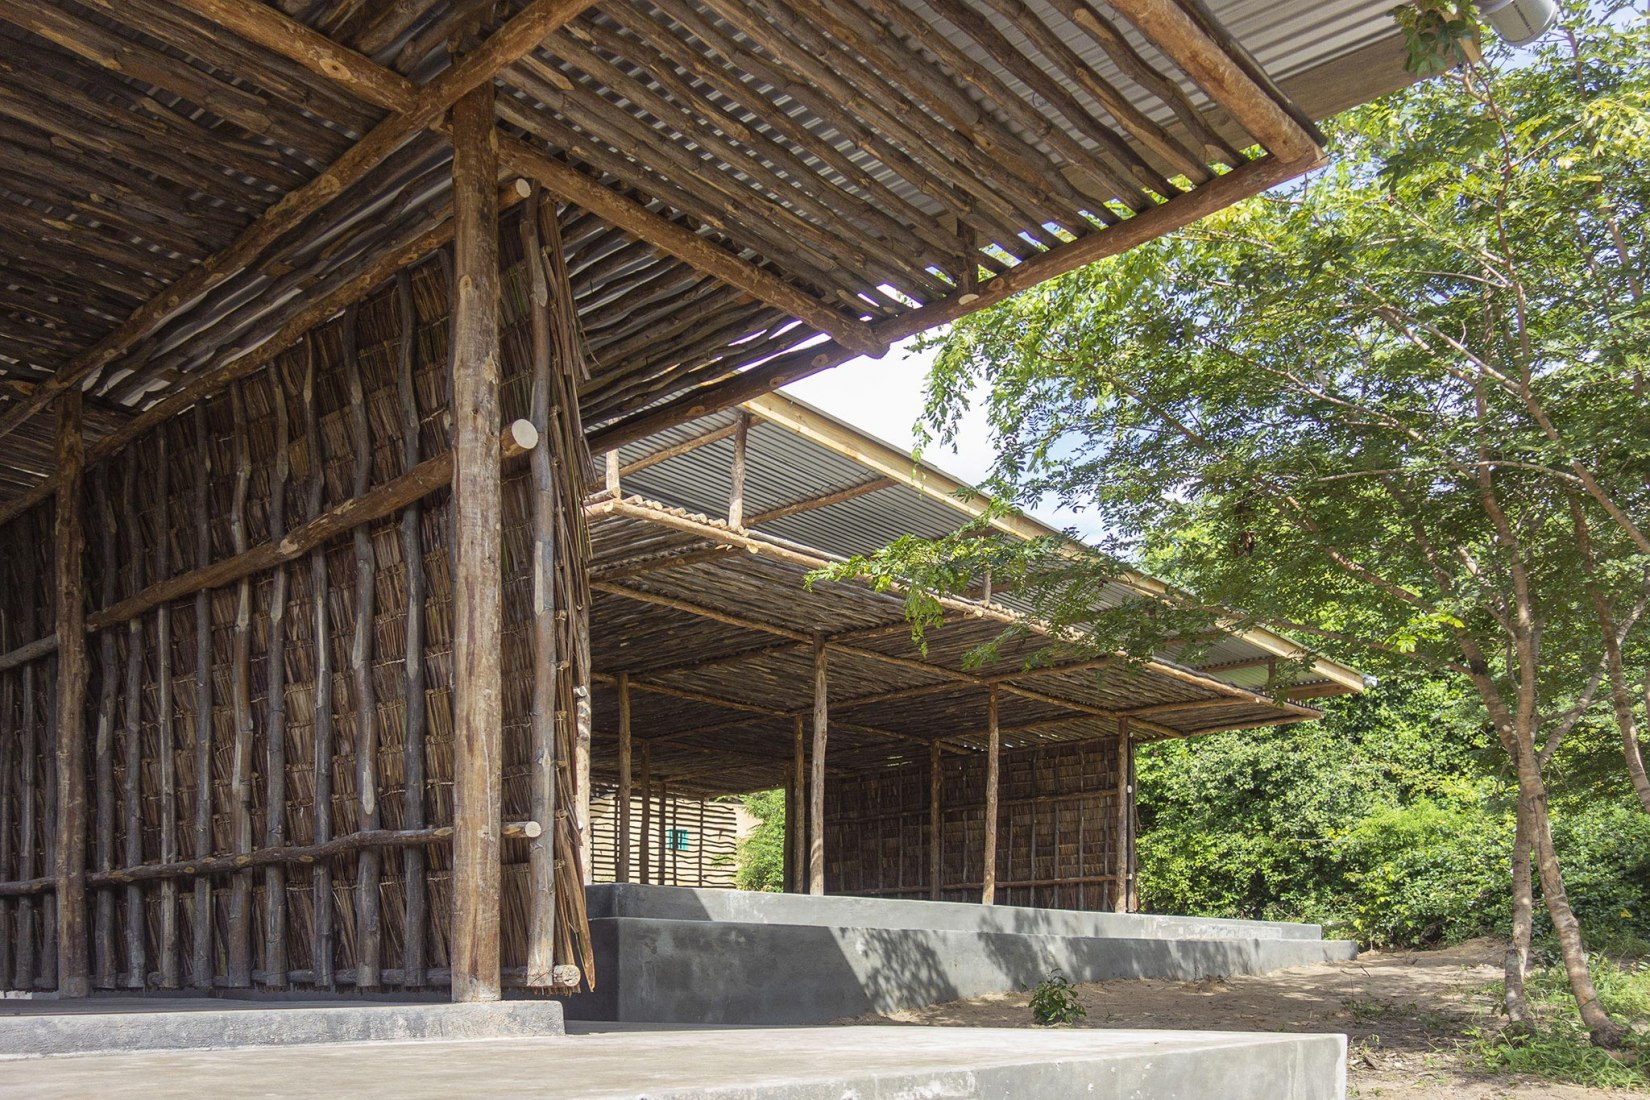 Eco Moyo Education Centre  Kindergarten by AUG, Architectopia, Jan Kazimierz Godzimirski. Photograph by Jan Kazimierz Godzimirski